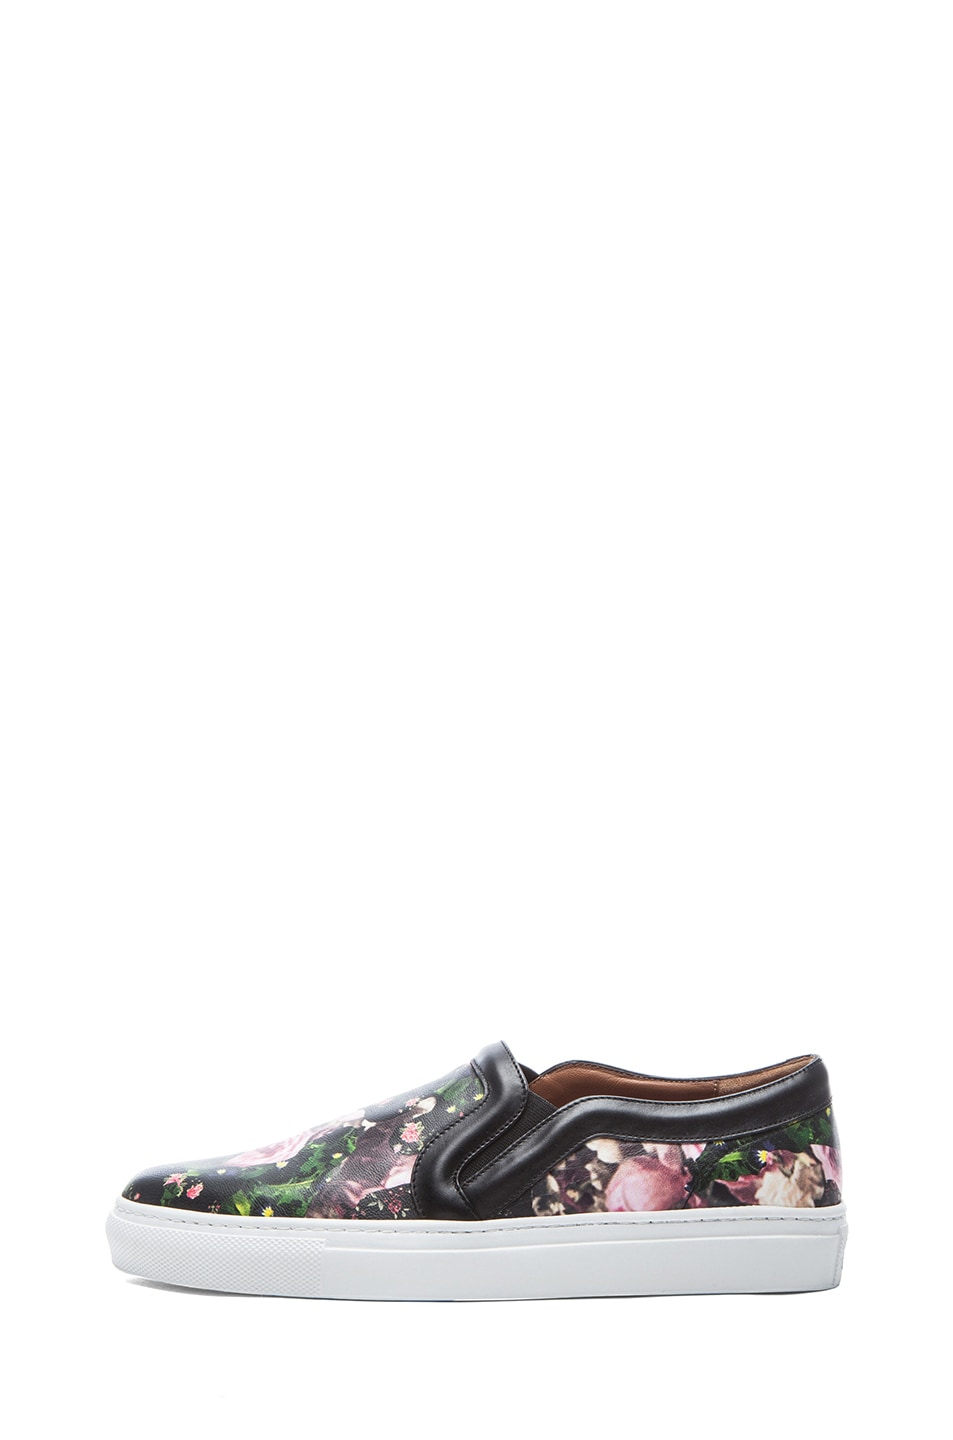 e303f919f7 Image 1 of Givenchy Nappa Leather Skate Shoes in Floral